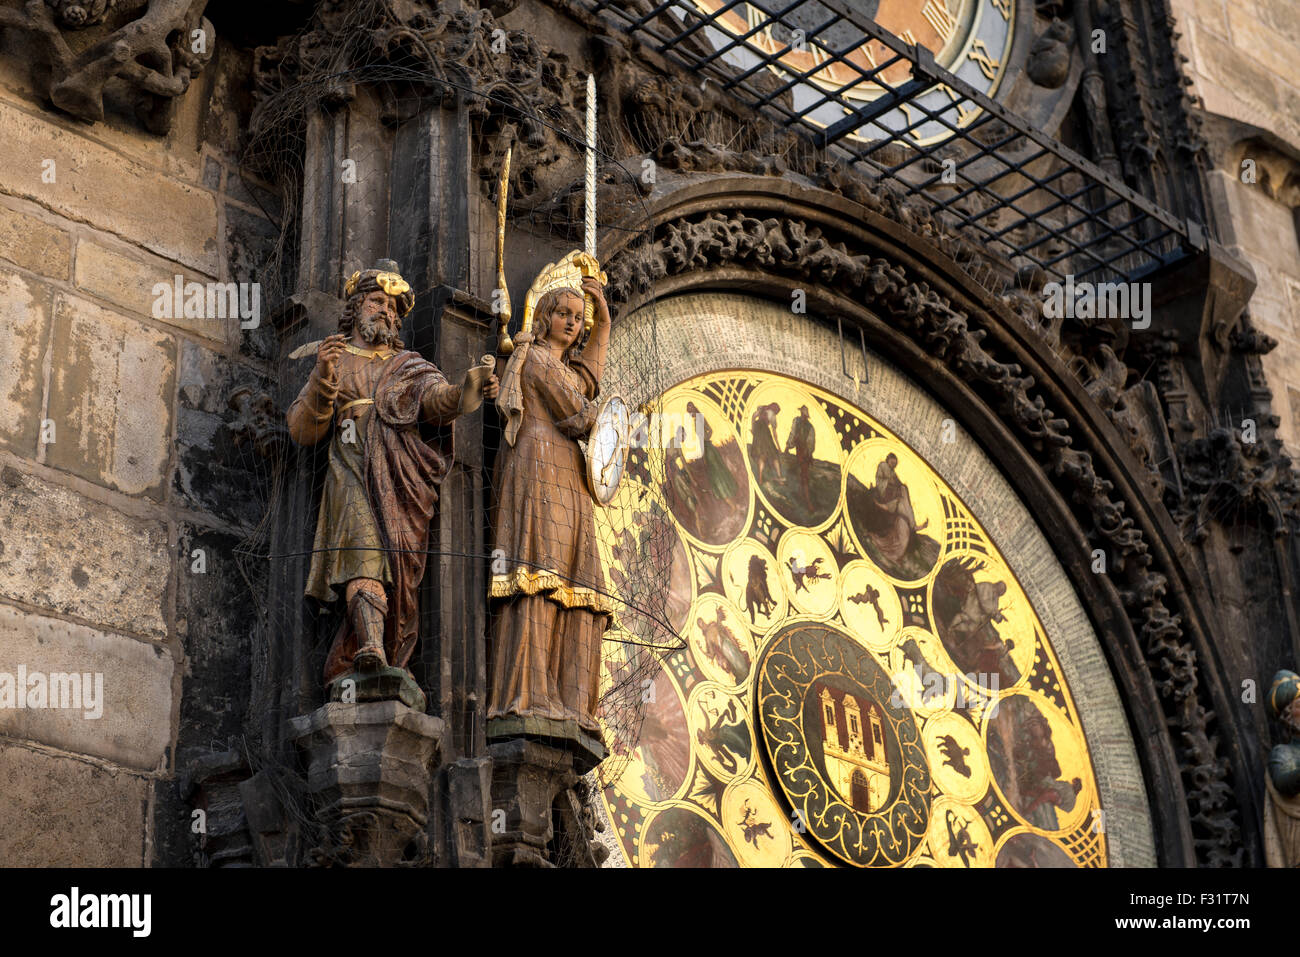 Prague Astronomical Clock (Prague Orloj) - on wall of Old Town City Hall  in Old Town Square in Prague, Czech Republic - Stock Image